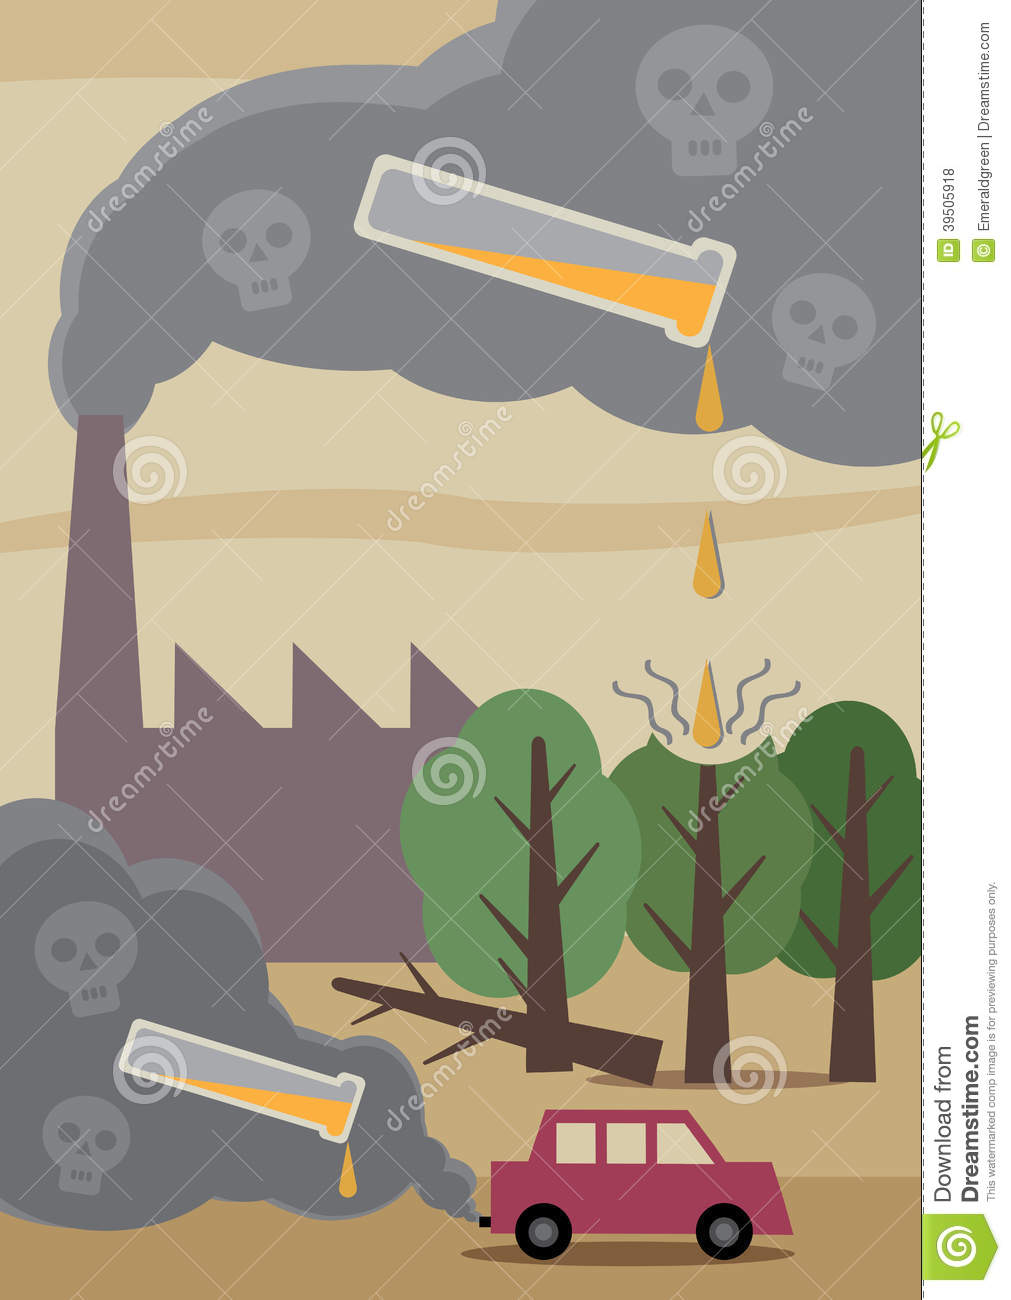 pollution stock vector